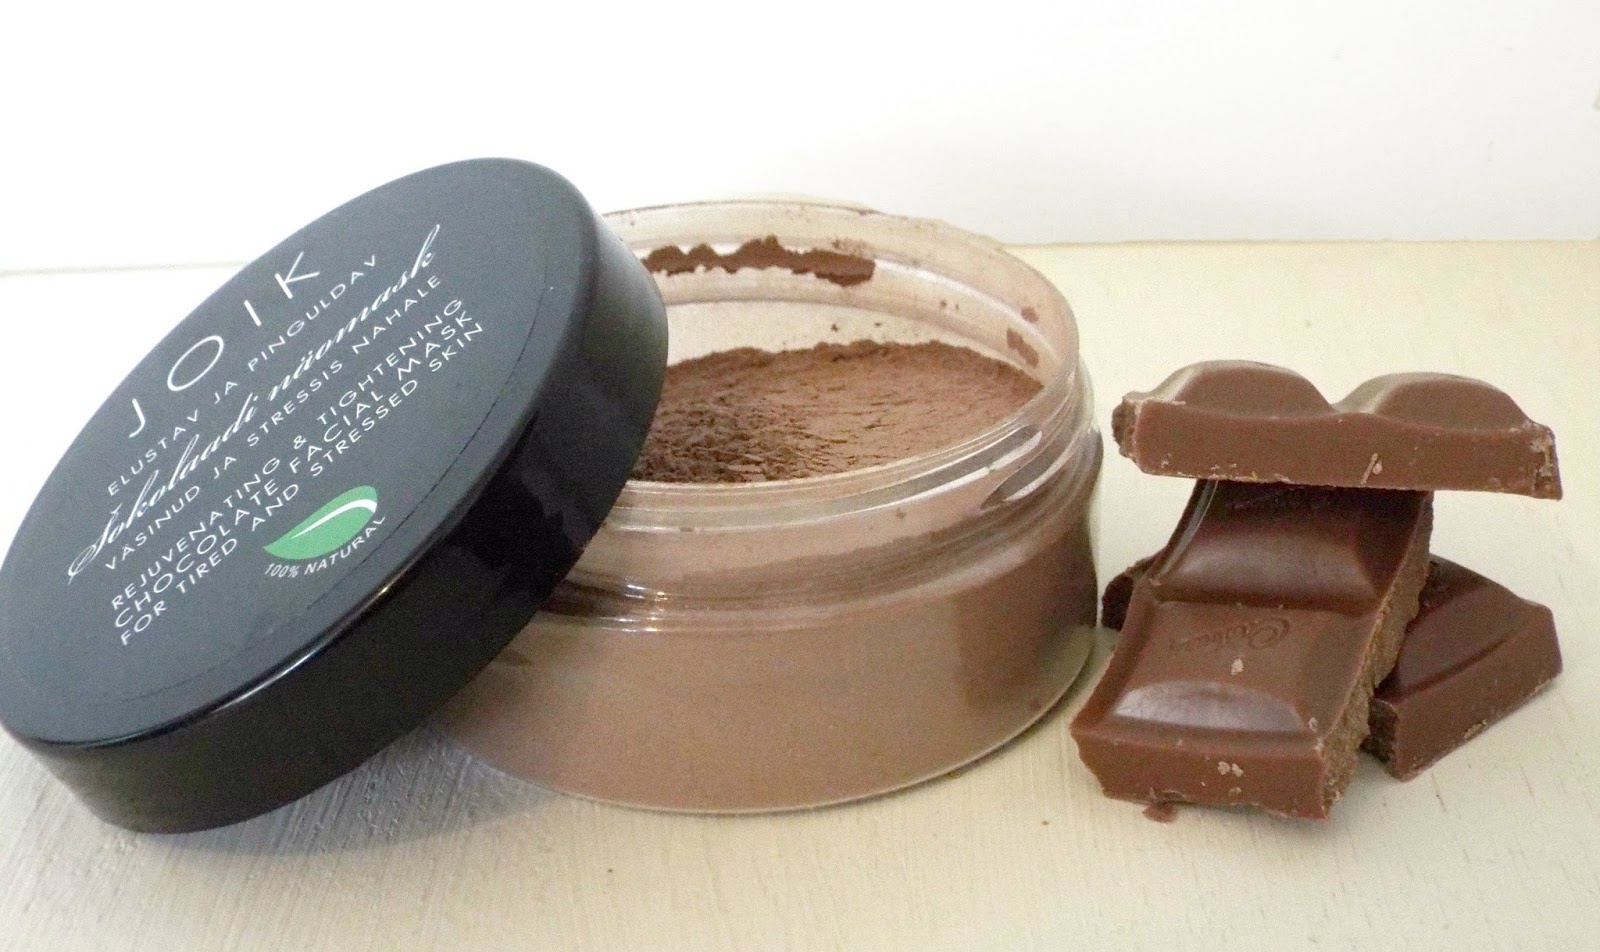 joik chocolate face mask review